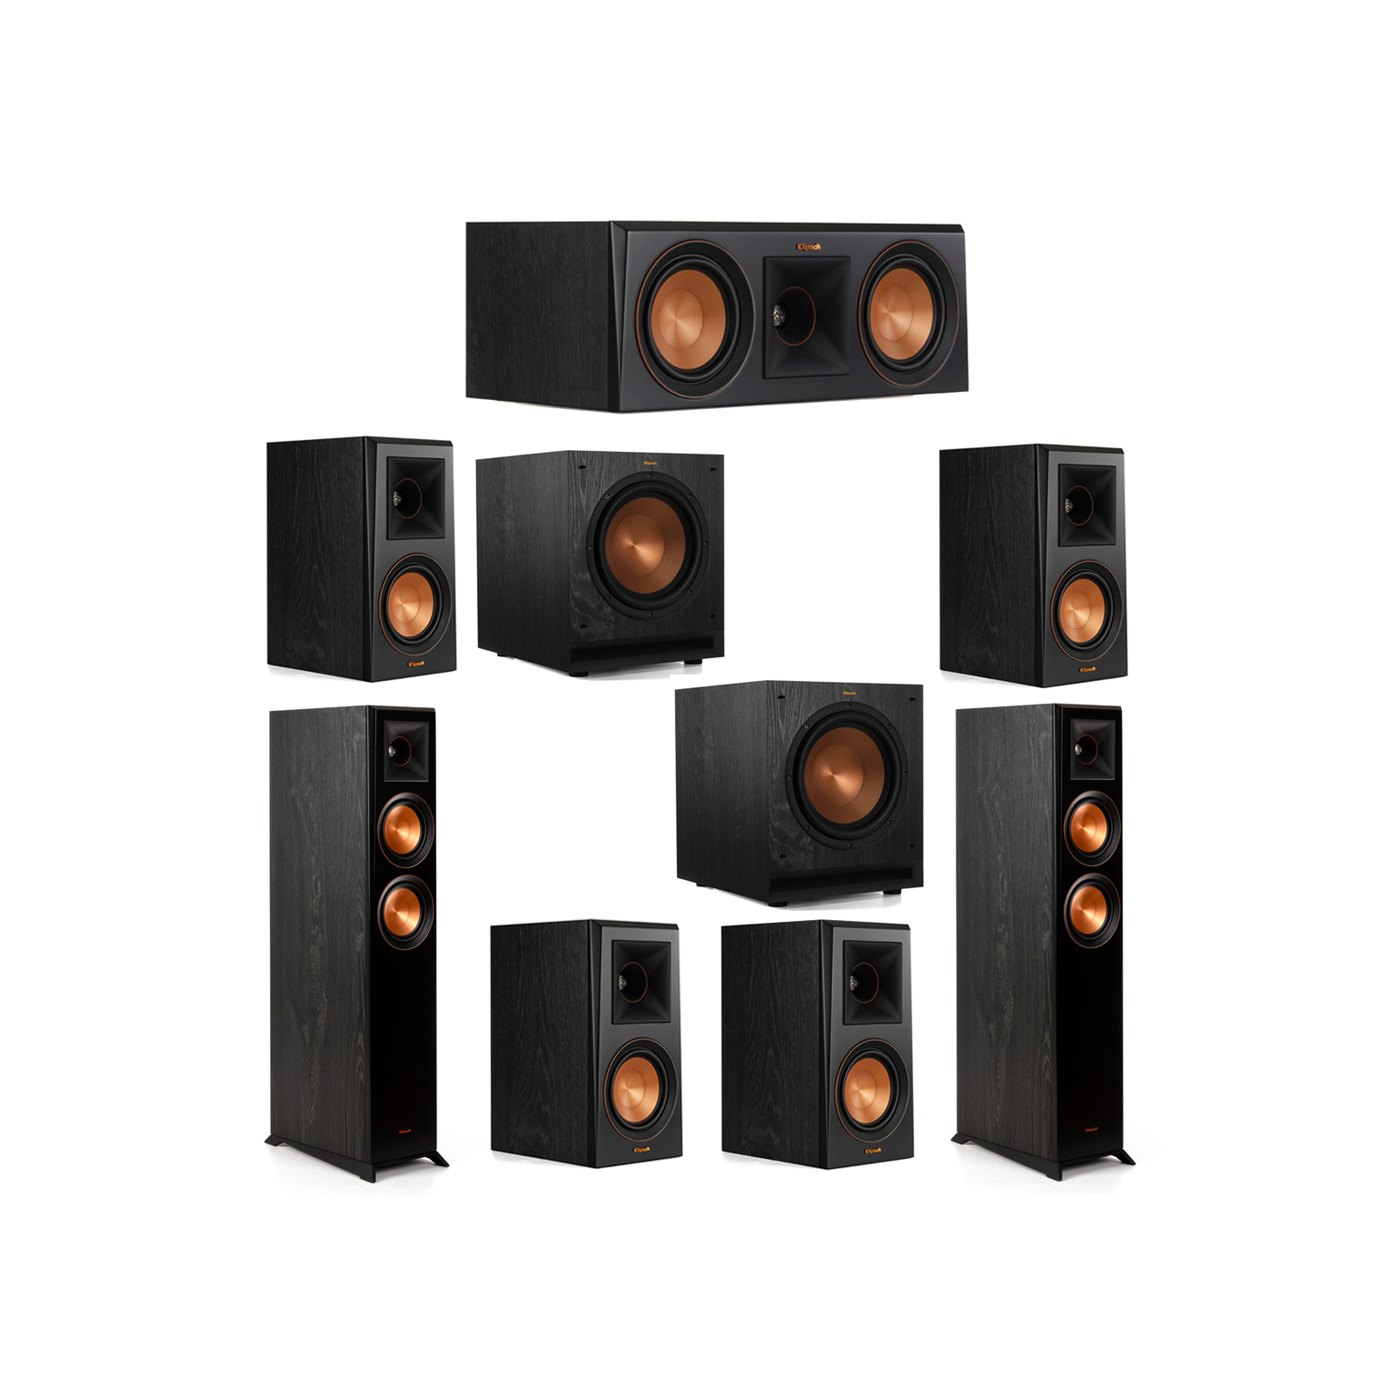 Klipsch 7.2 System with 2 RP-5000F Floorstanding Speakers, 1 Klipsch RP-500C Center Speaker, 4 Klipsch RP-500M Surround Speakers, 2 Klipsch SPL-100 Subwoofers